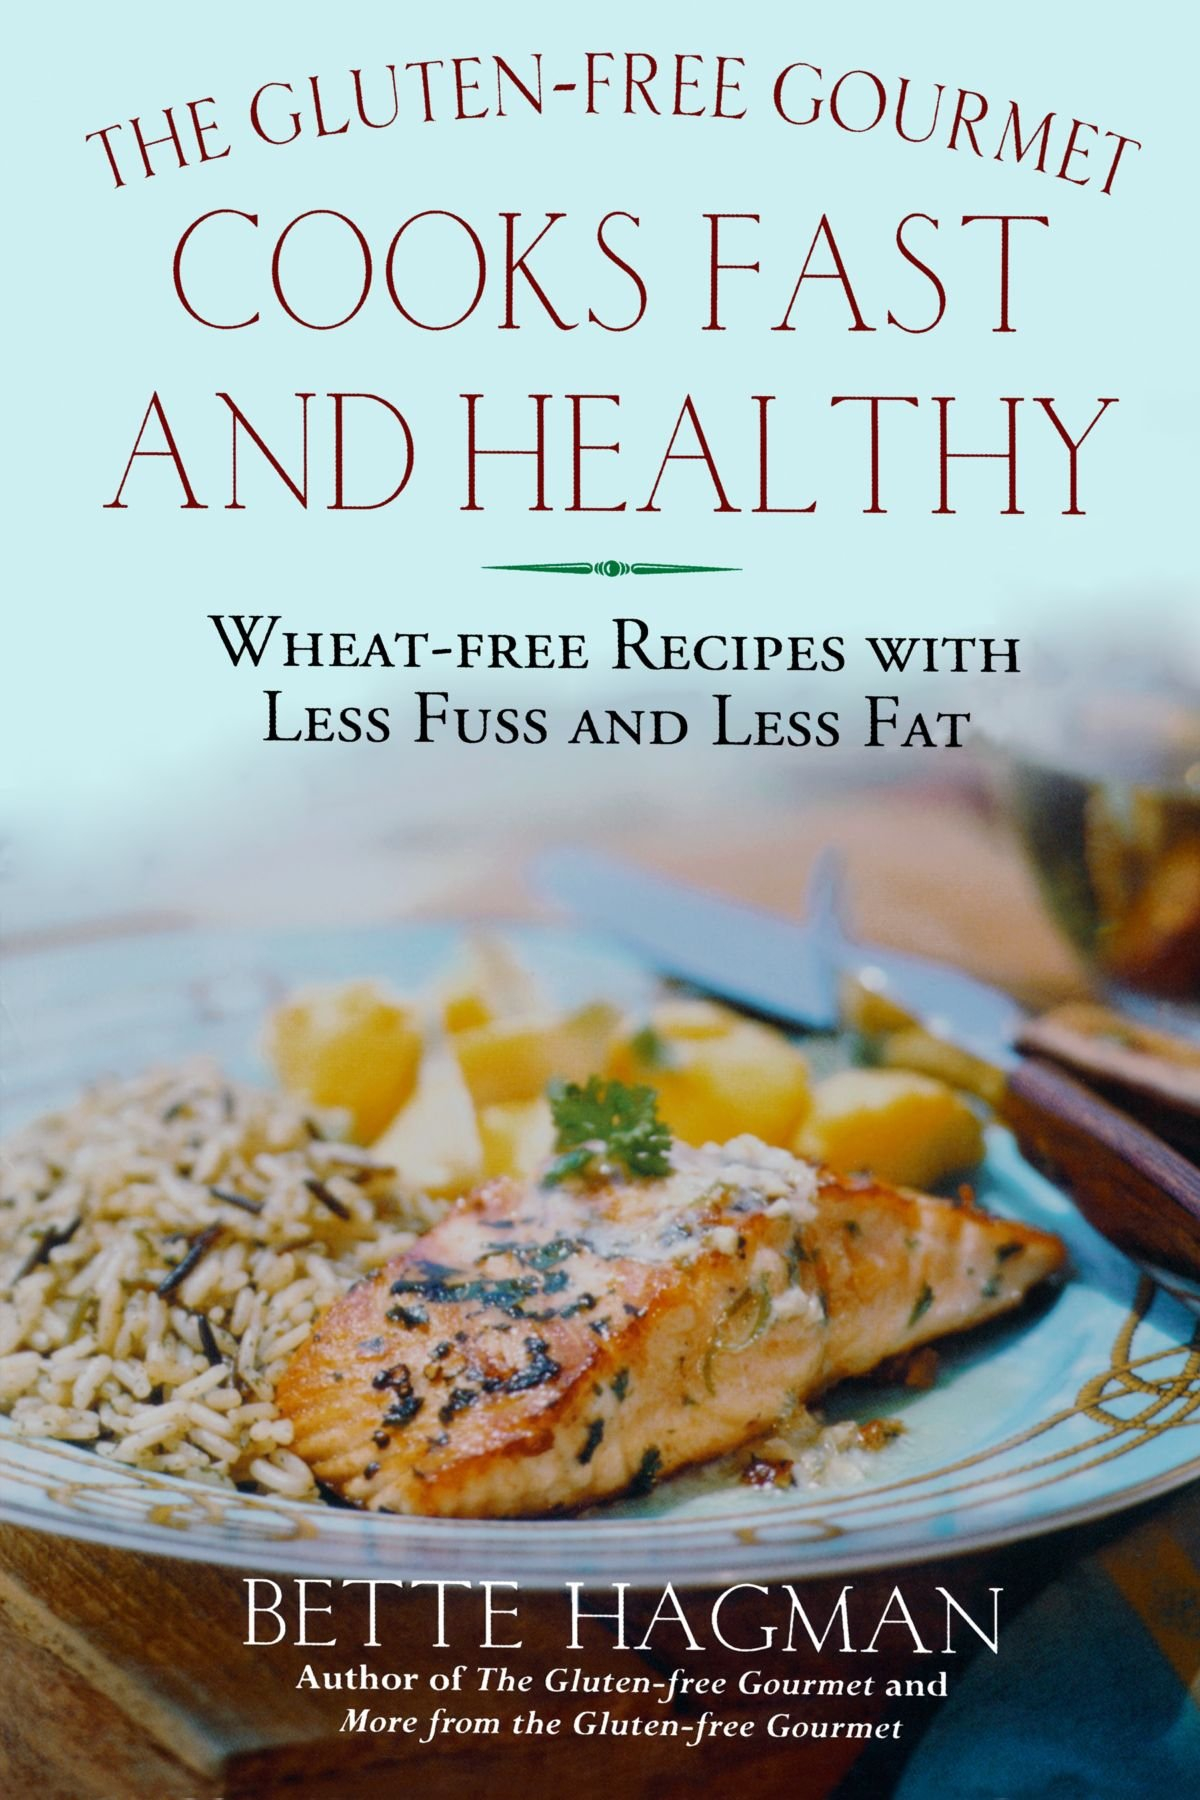 The gluten free gourmet cooks fast and healthy wheat free and the gluten free gourmet cooks fast and healthy wheat free and gluten free with less fuss and less fat bette hagman 9780805065251 amazon books forumfinder Image collections